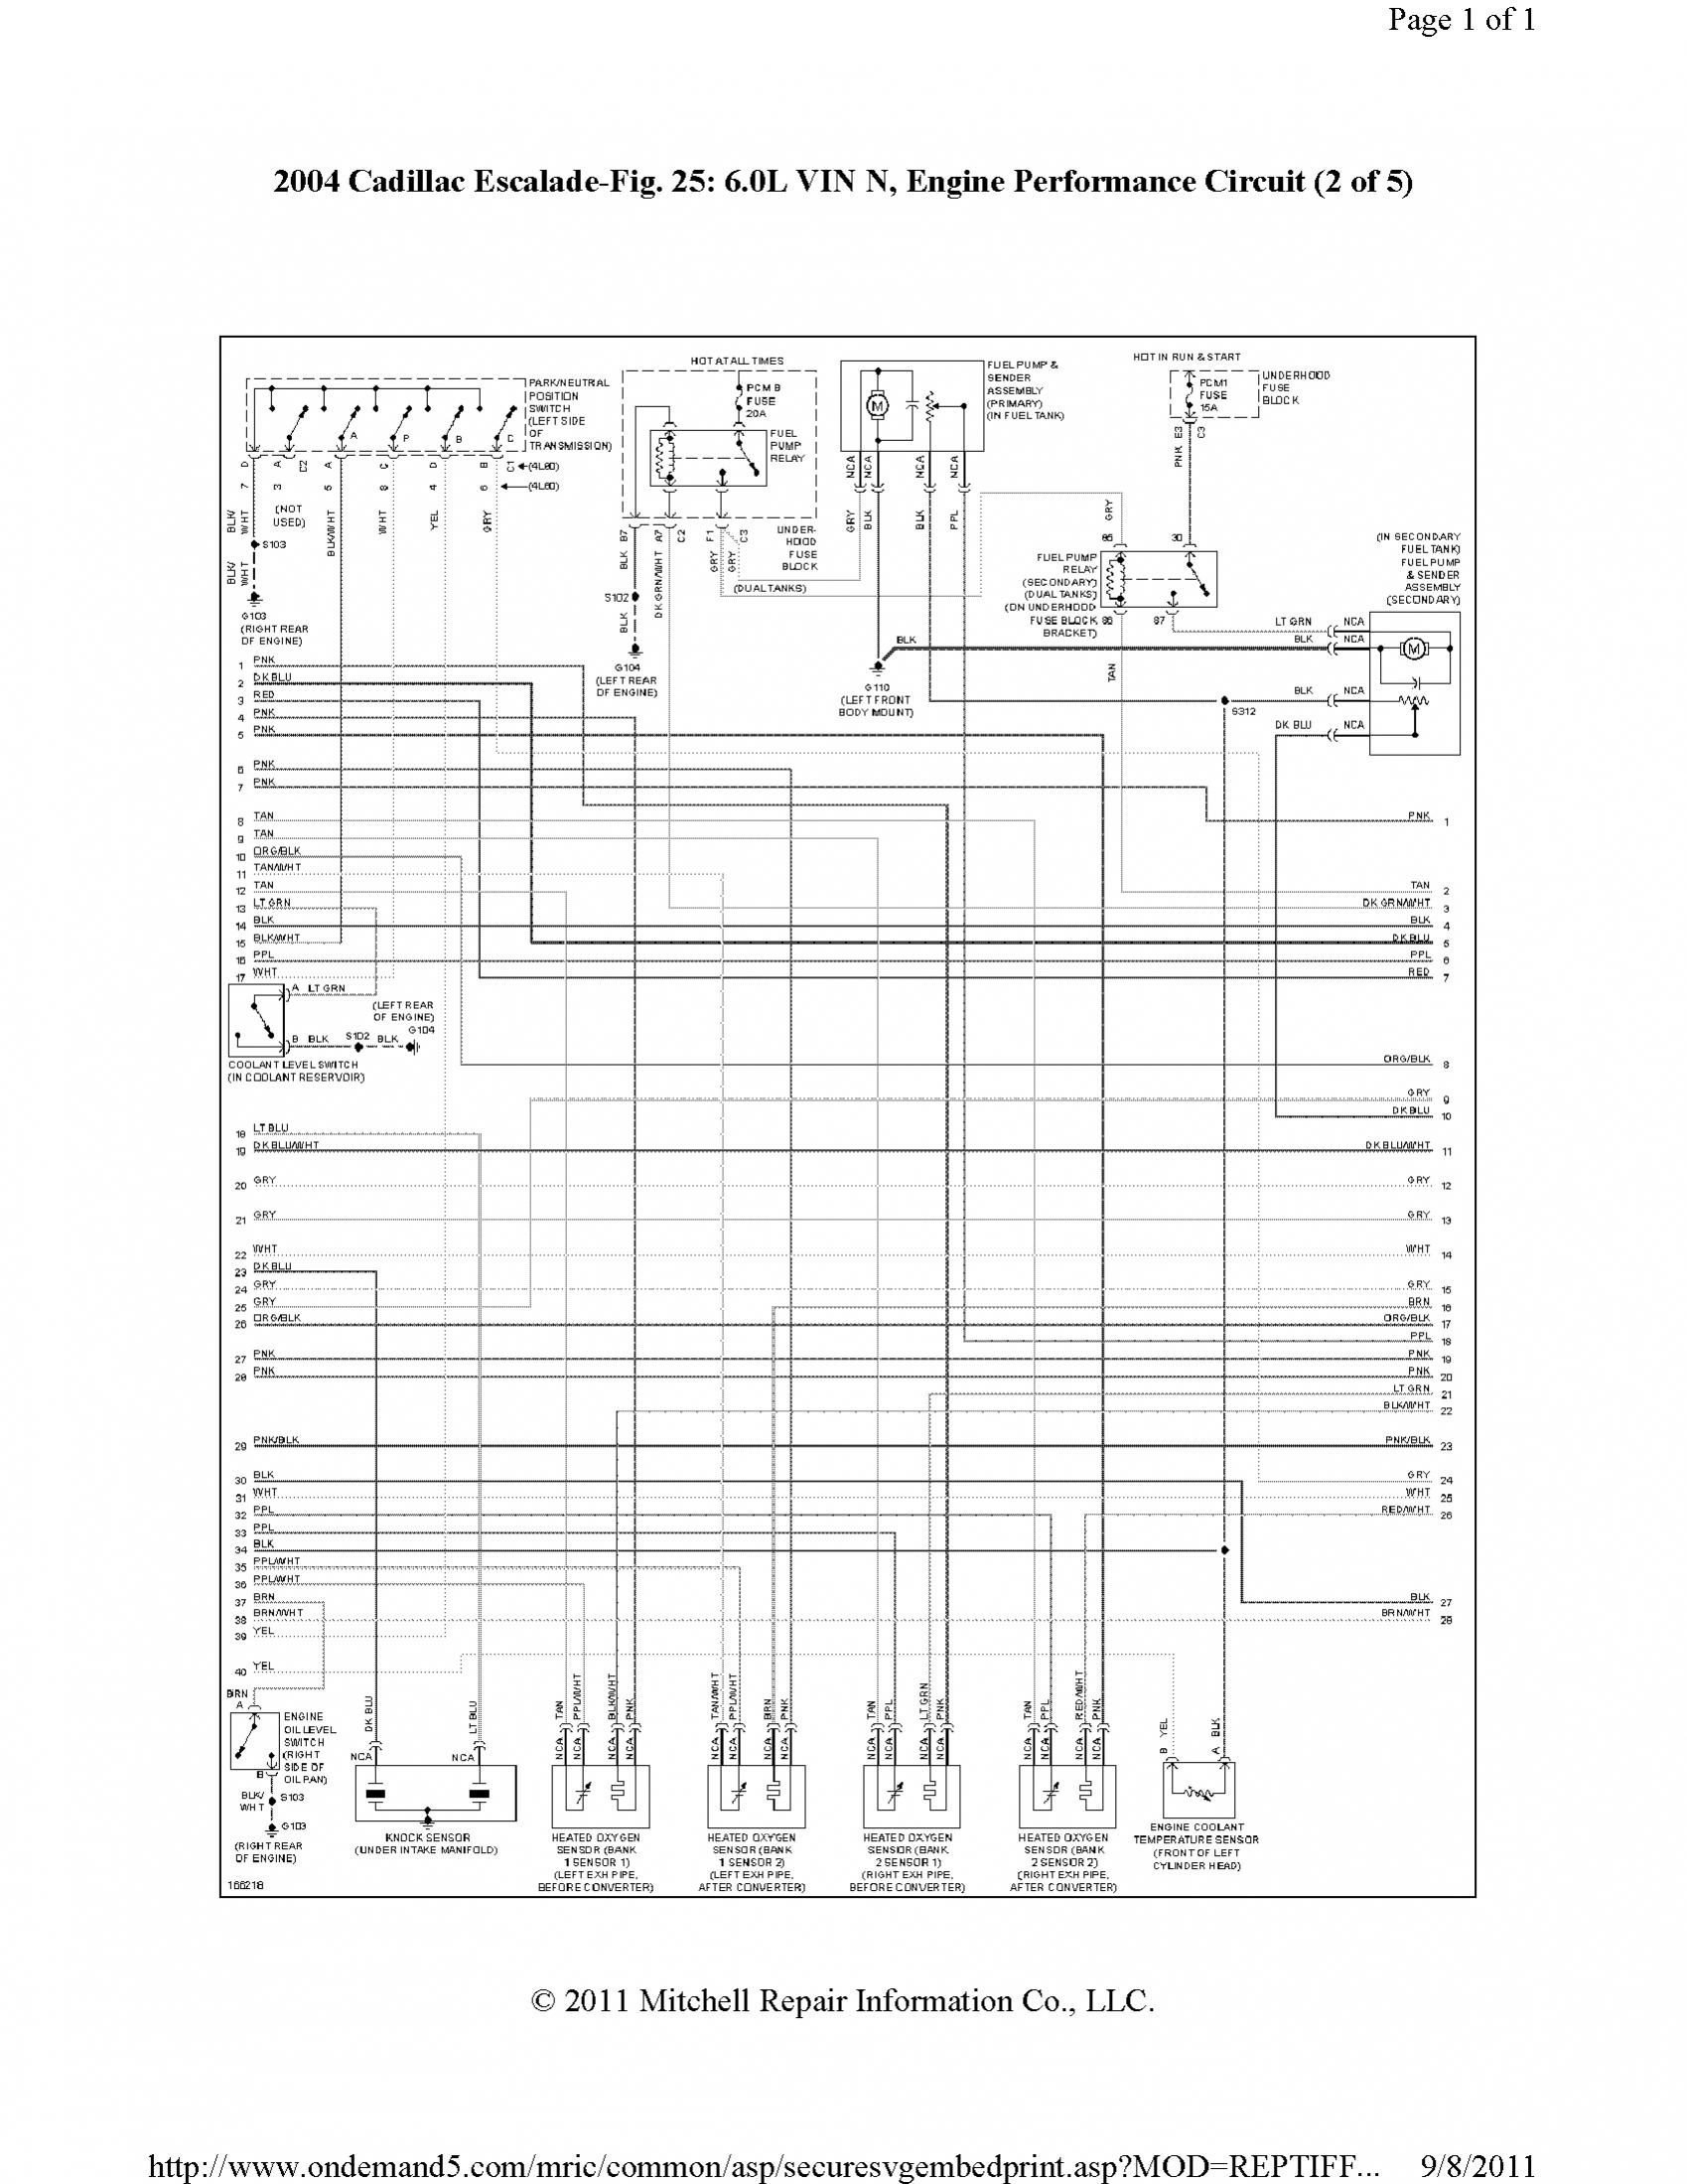 lq9 wiring diagram wiring diagram Lq9 Wiring Diagram ignition coil upgrade to gm lq9 coils